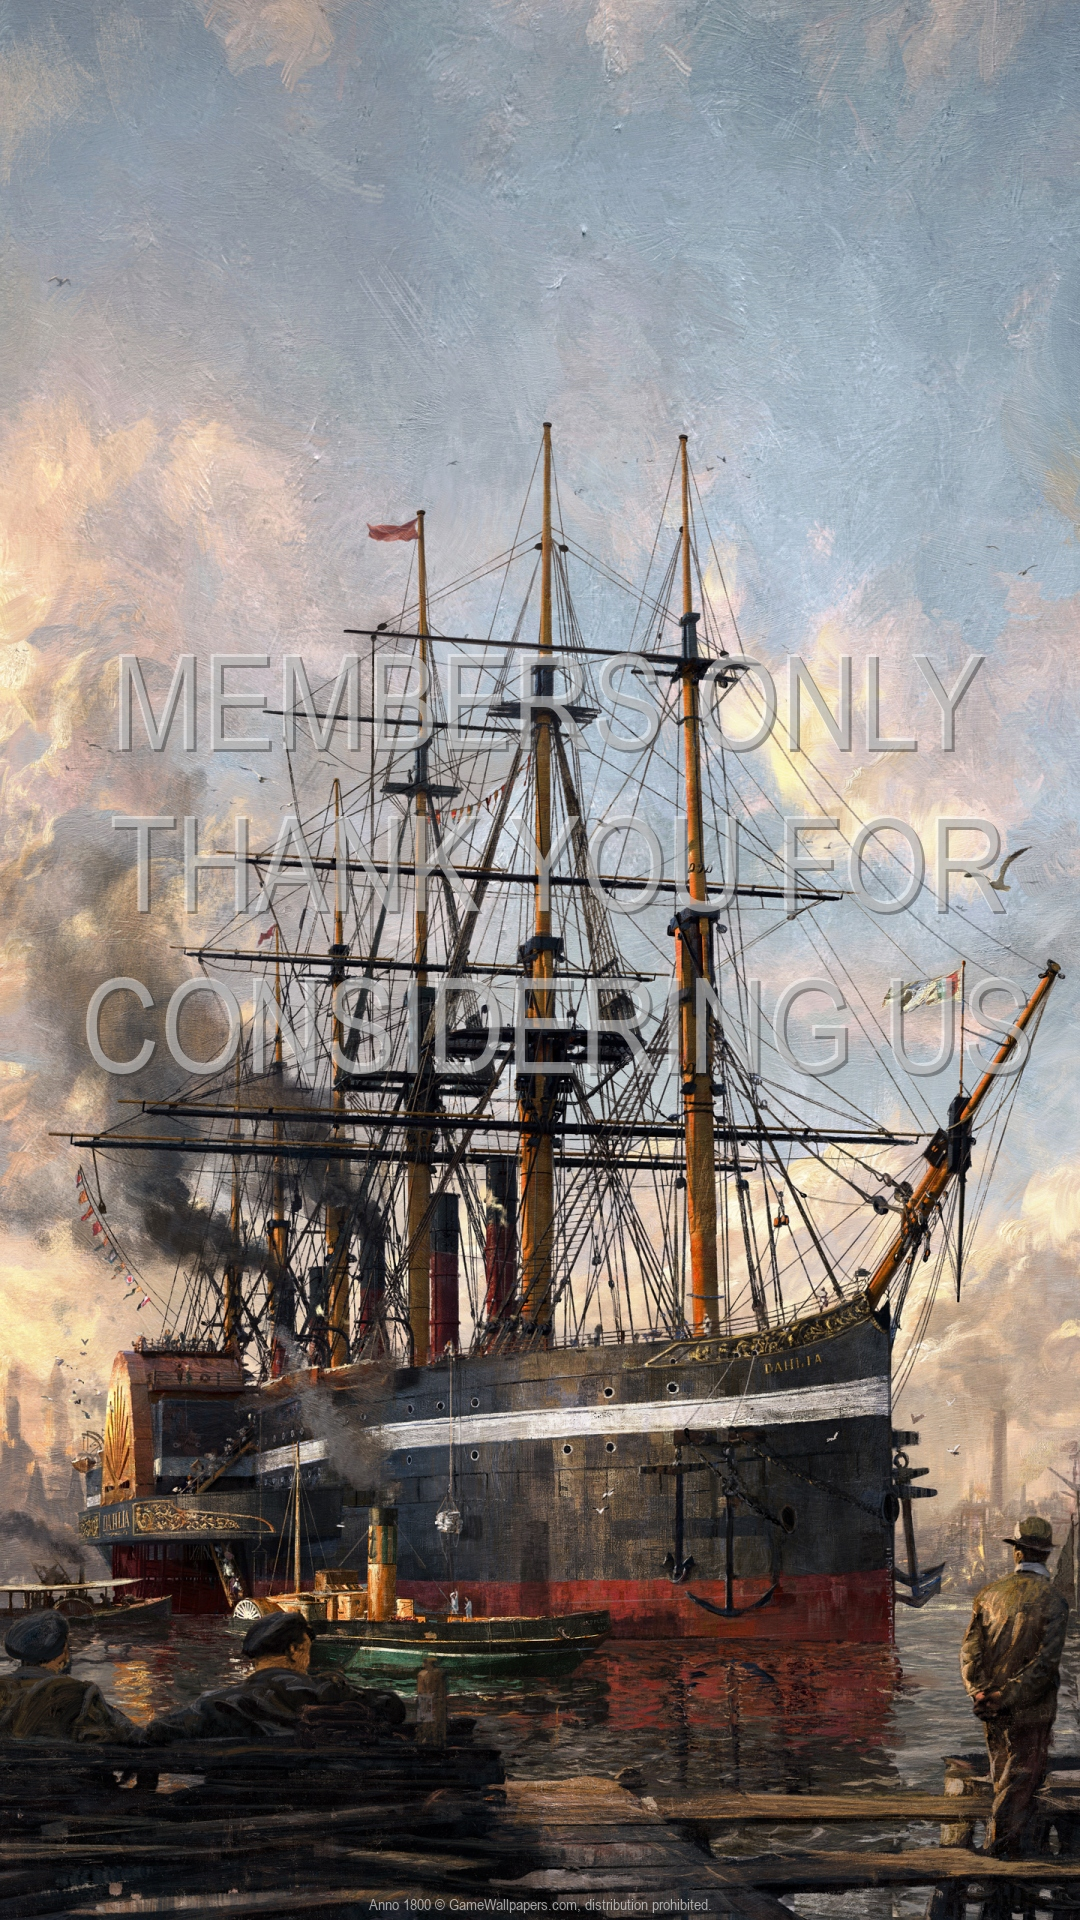 Anno 1800 1920x1080 Mobile wallpaper or background 01